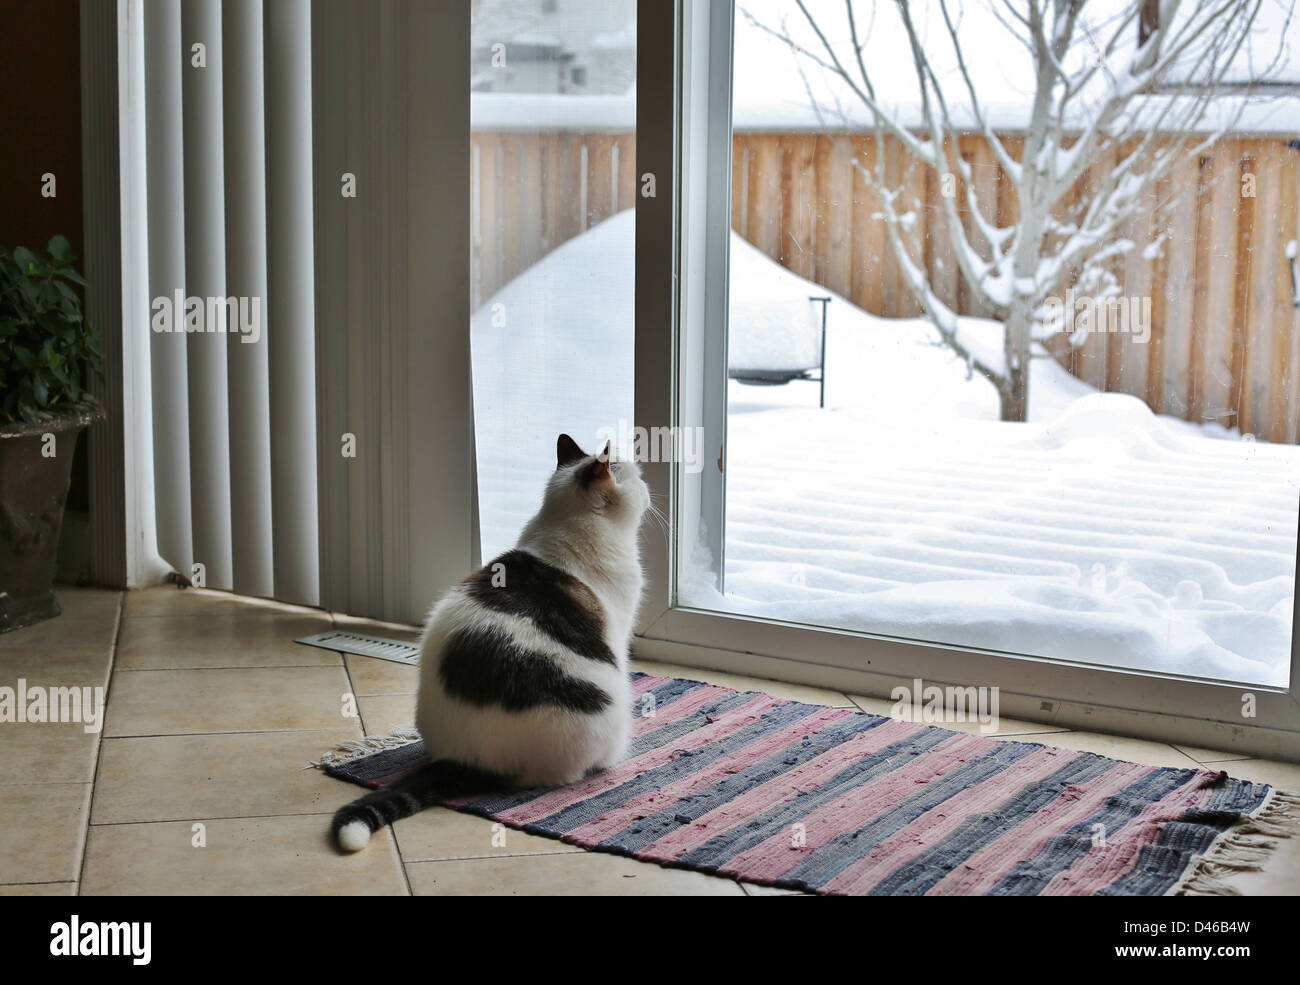 A cat looks longingly out a window at a snow covered yard. - Stock Image